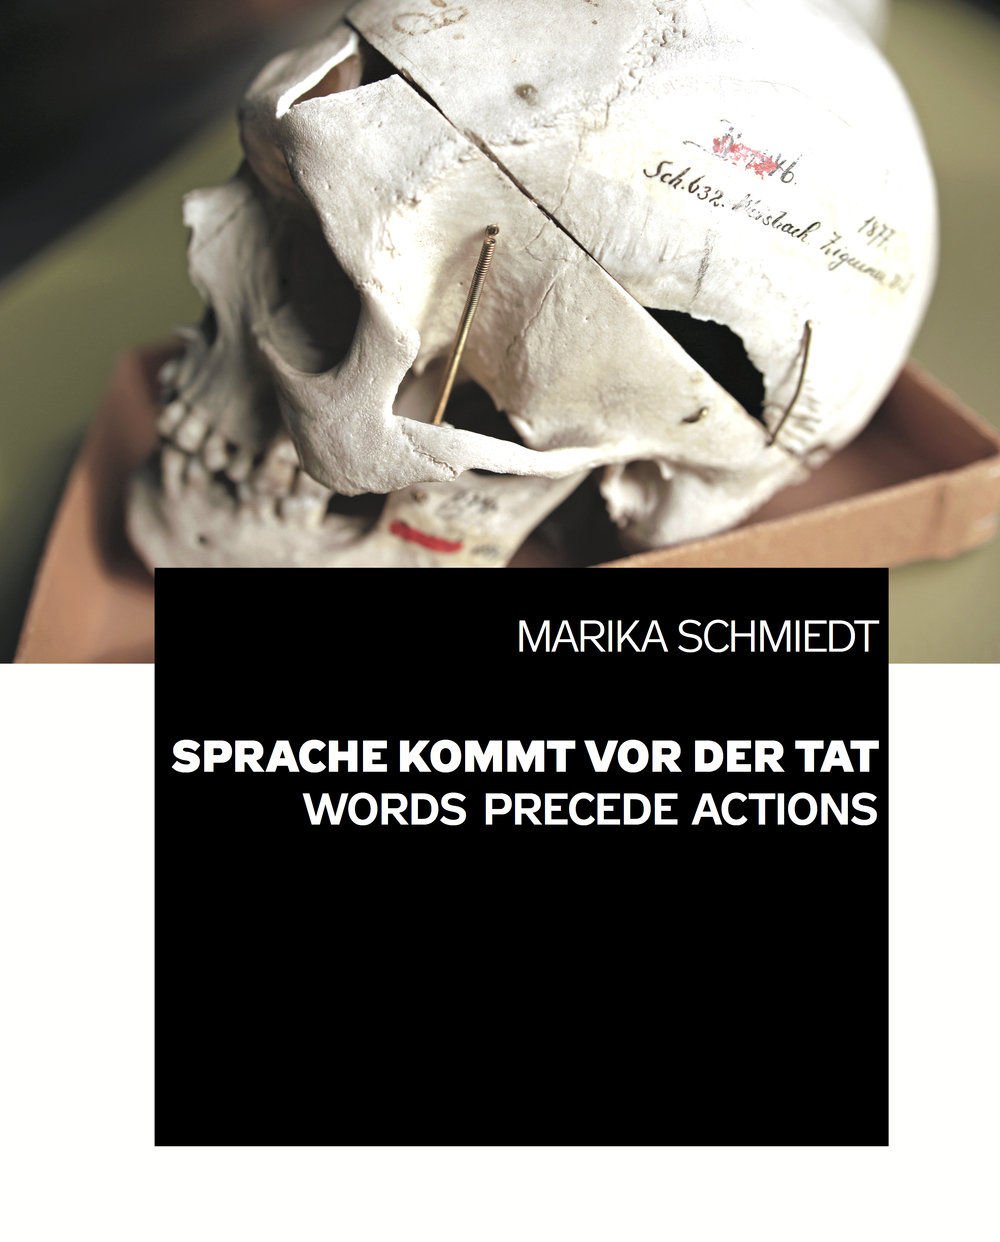 Catalogue,  Words precede actions. The context of language, racism, economy and power, 196 pages (German/English), 24 × 30 cm, numerous b/w and colour illustrations, 2018.   https://marikaschmiedt.com/ausstellung-sprache-kommt-vor-der-tat/